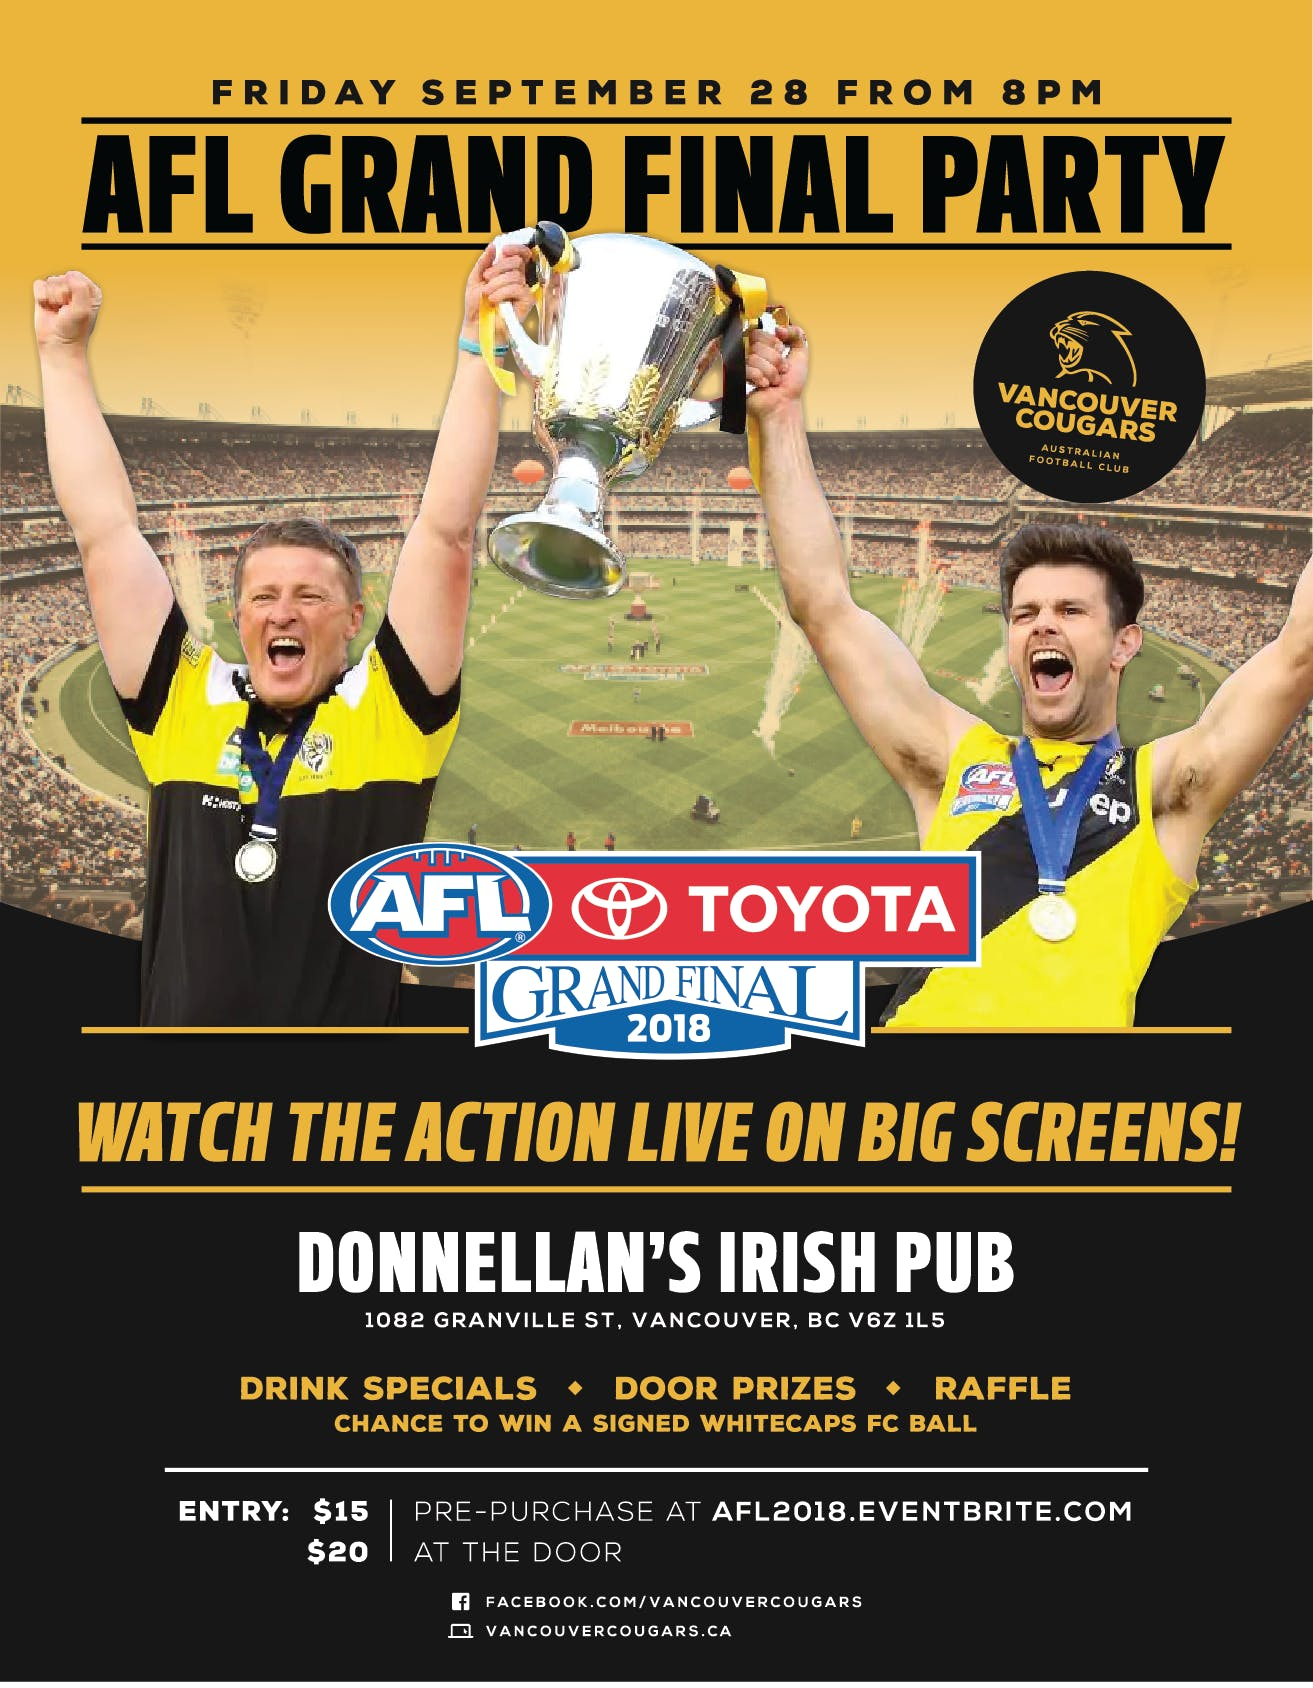 2018 AFL GRAND FINAL PARTY - 29 SEP 2018